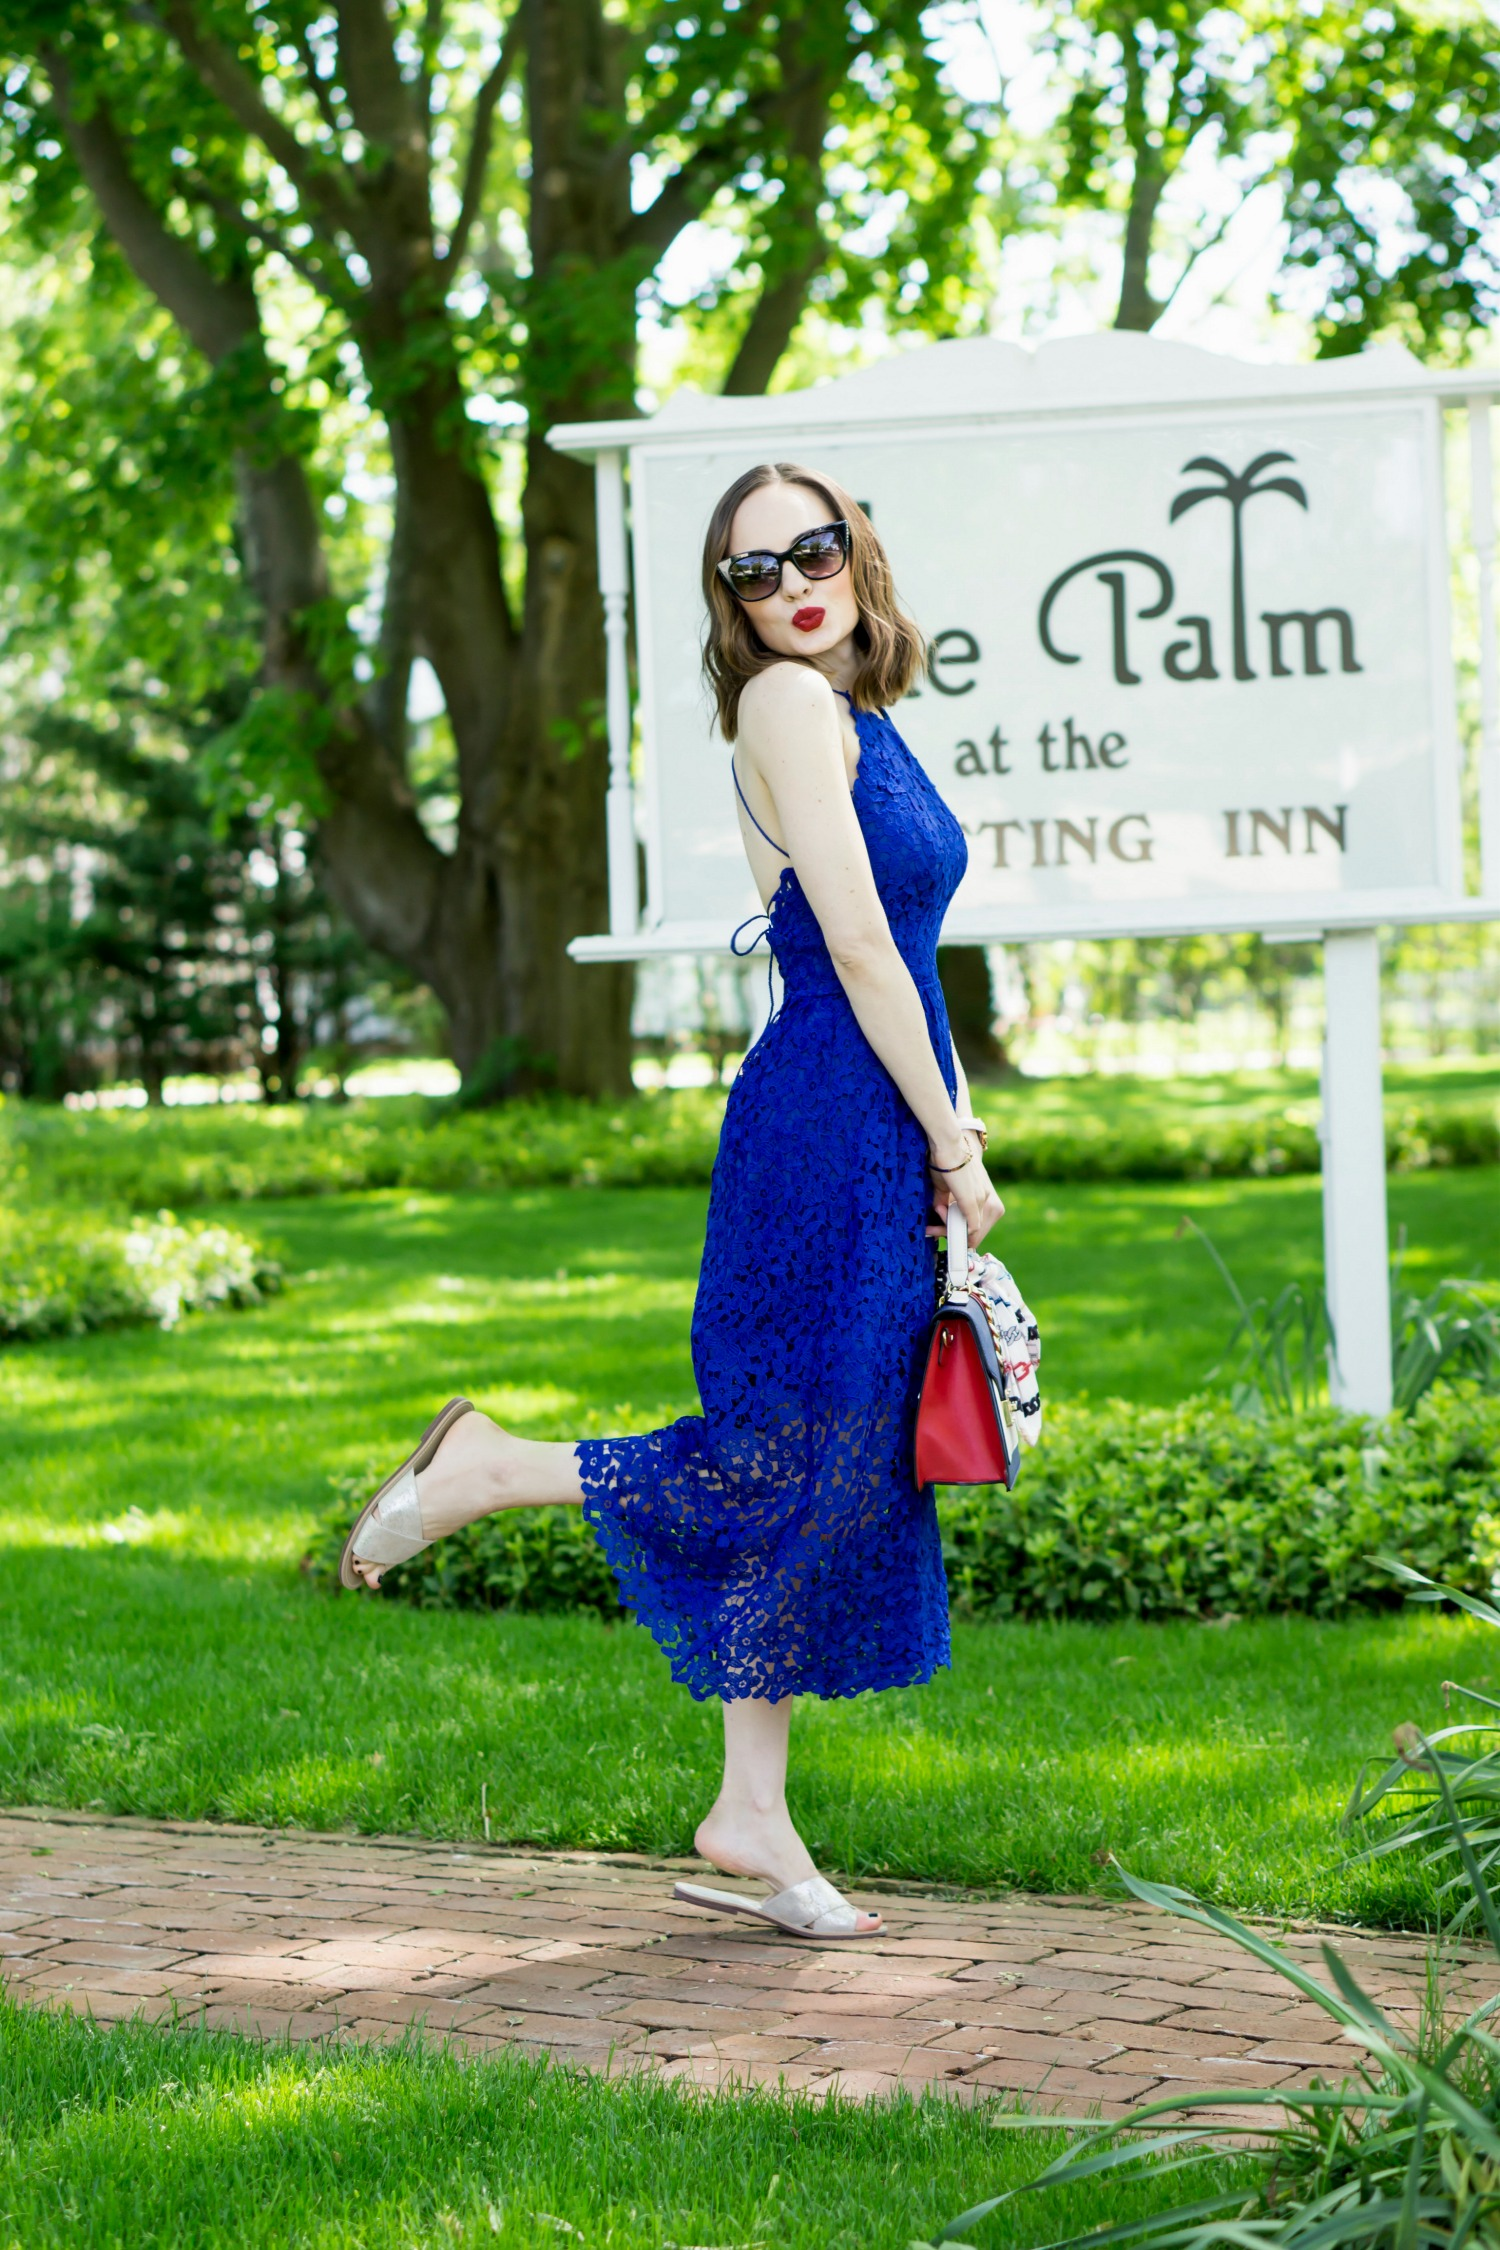 StyleSprinter - Katya Bychkova - Fashion Blogger in the Hamptons